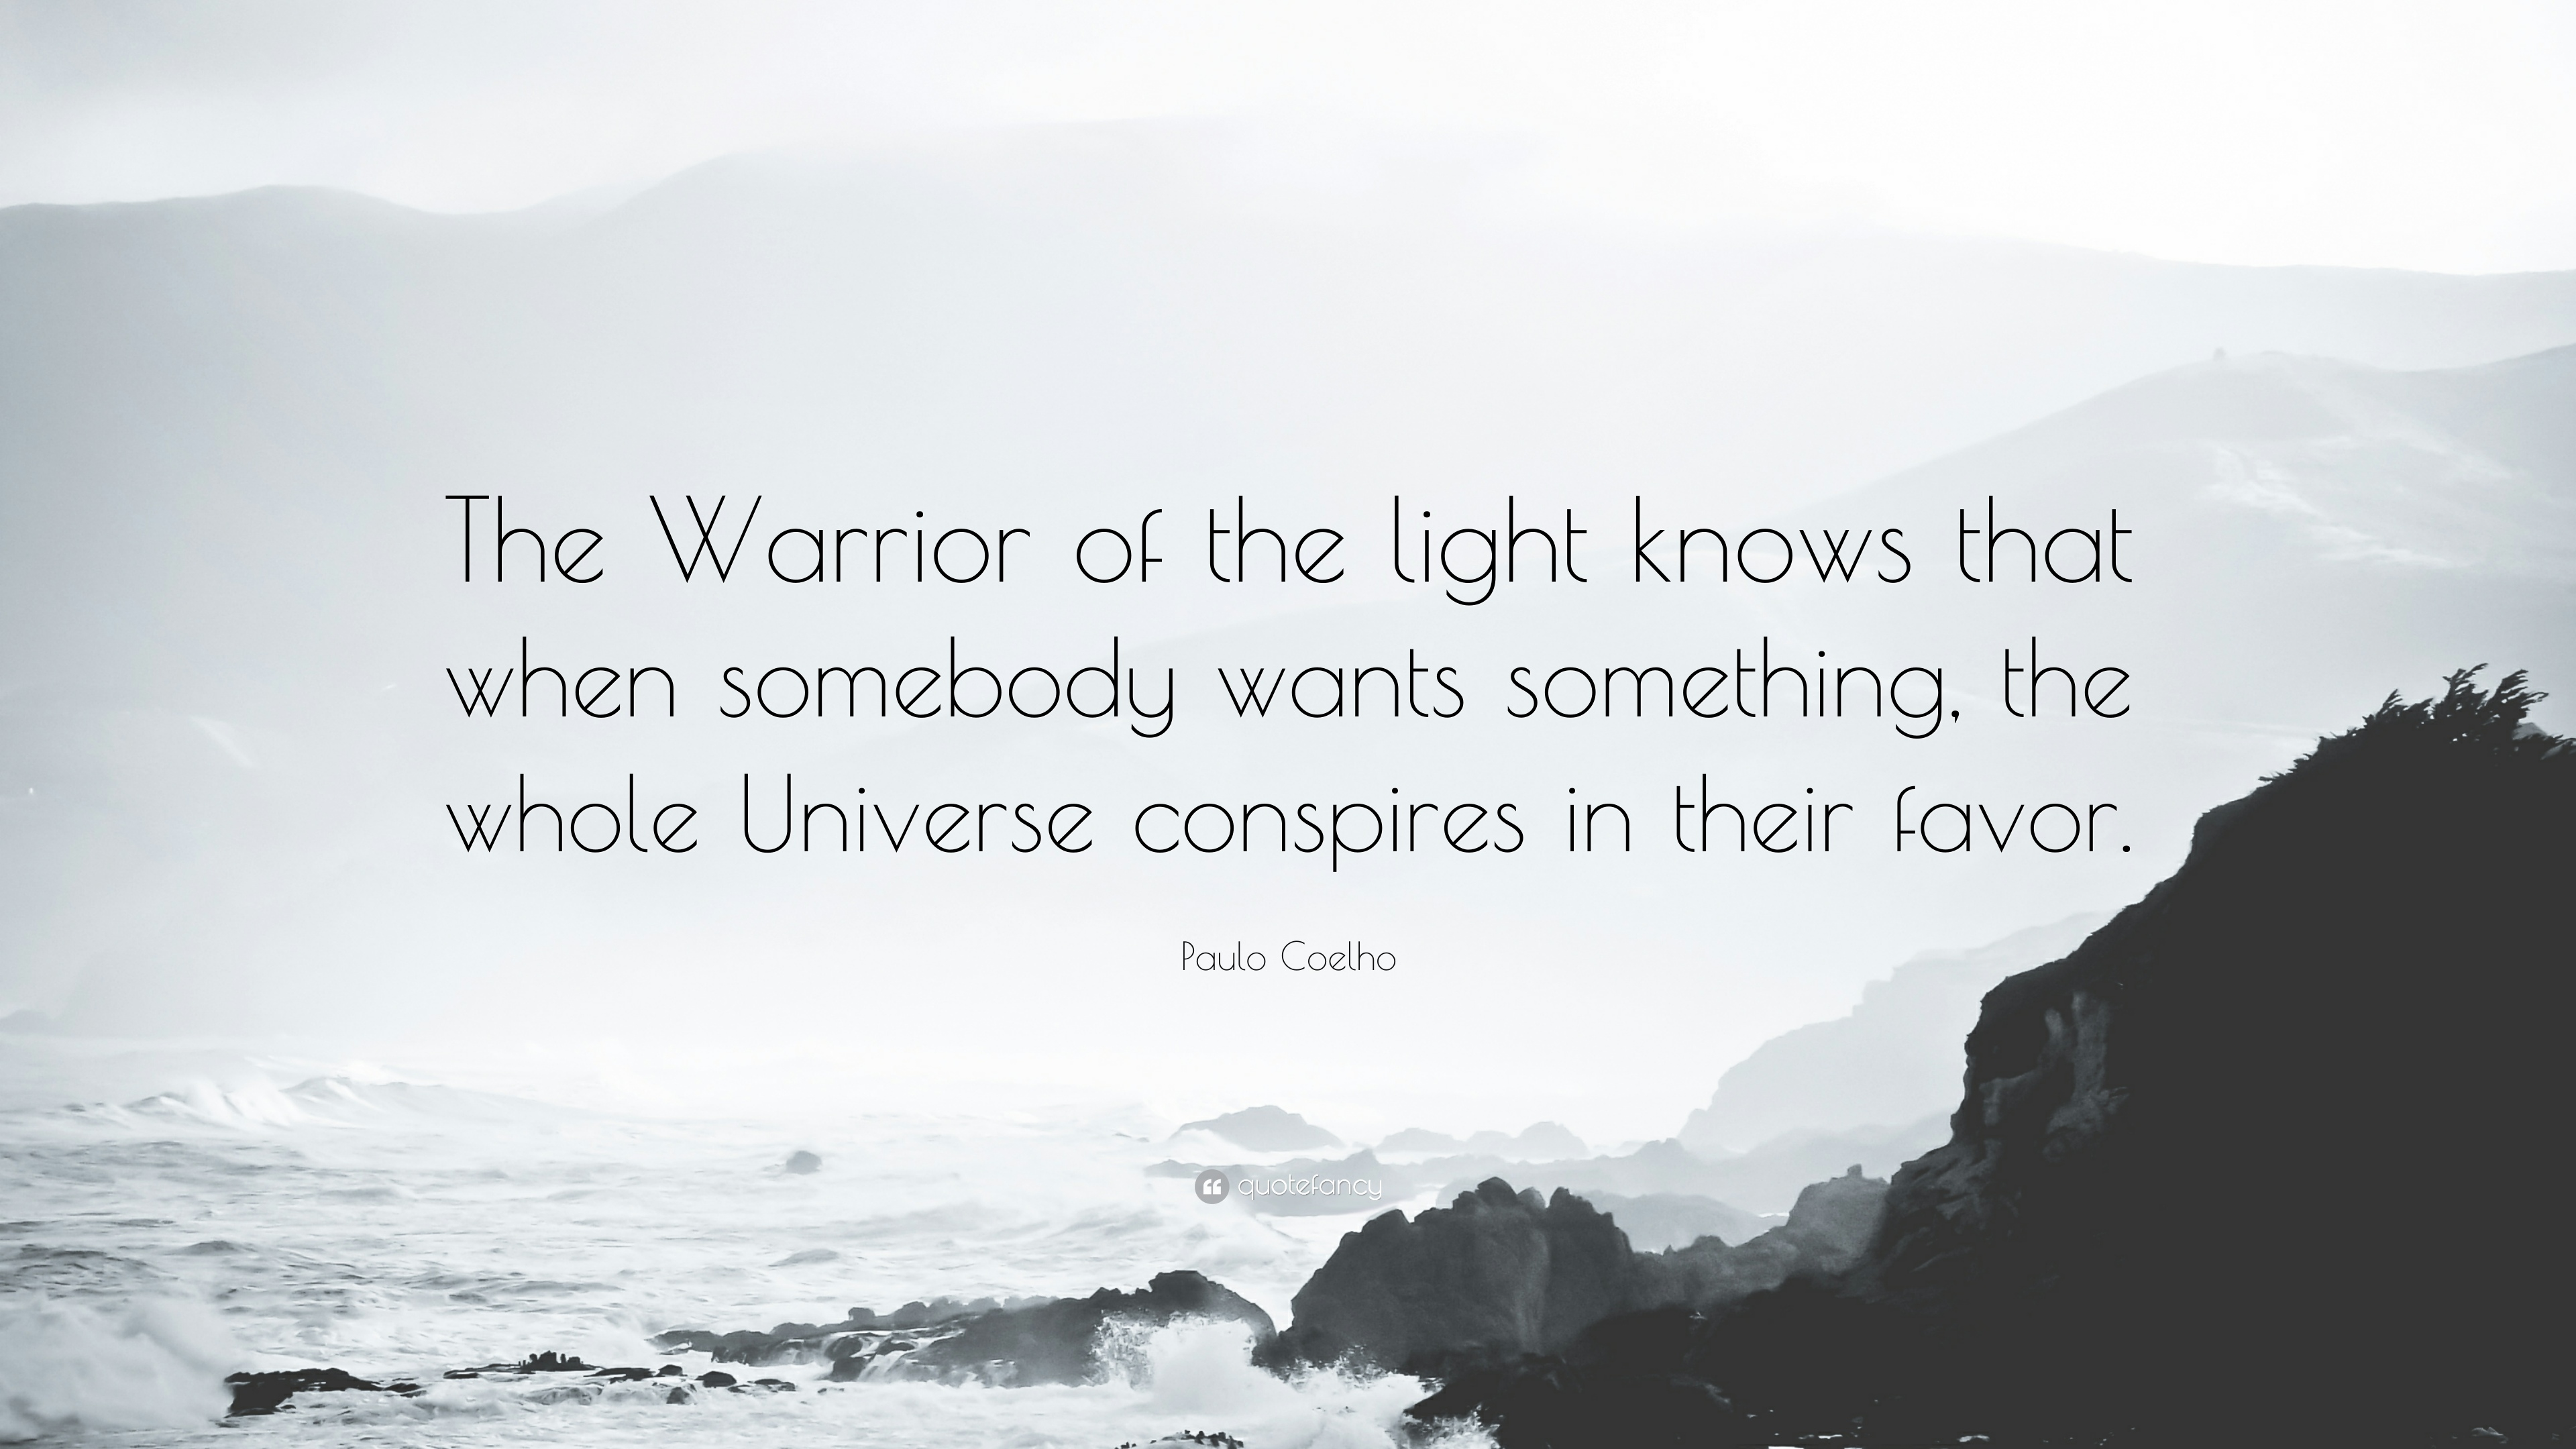 Paulo Coelho Quote: U201cThe Warrior Of The Light Knows That When Somebody  Wants Something Design Ideas